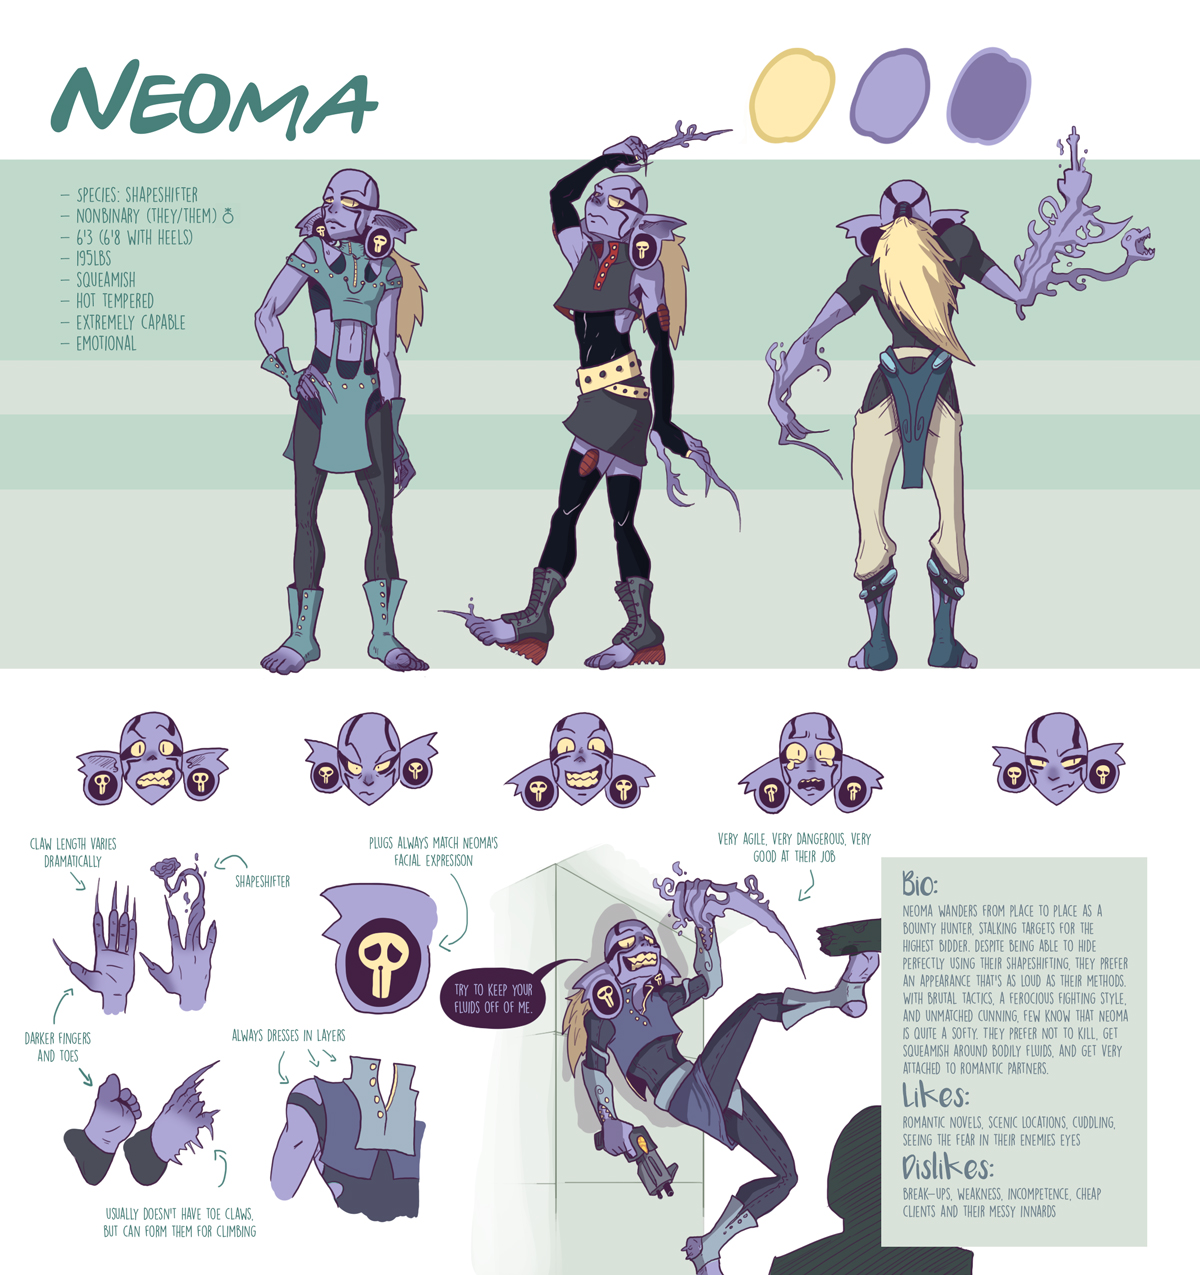 Neoma the Bounty Hunter